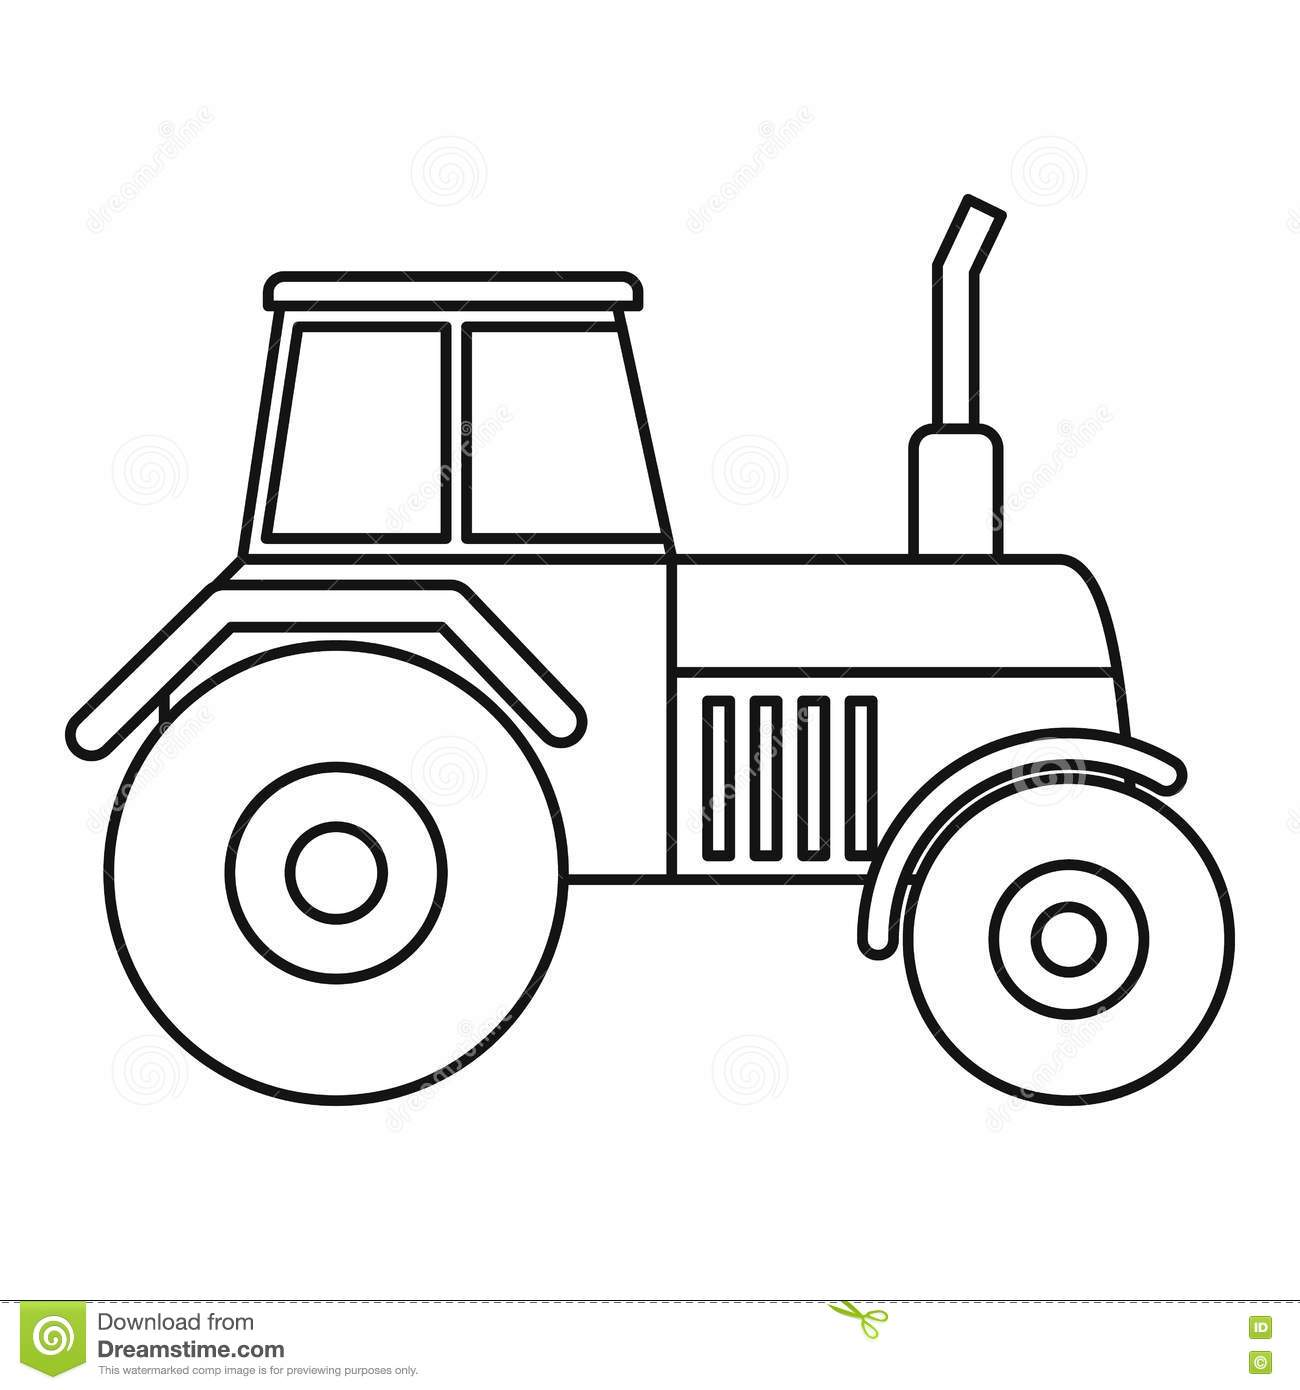 Tracteur John Deere as well Tractors And Construction furthermore Construction Coloring Pages besides Tractor Coloring Pictures additionally 4 Wheeler Coloring Pages. on john deere farm tractor coloring page